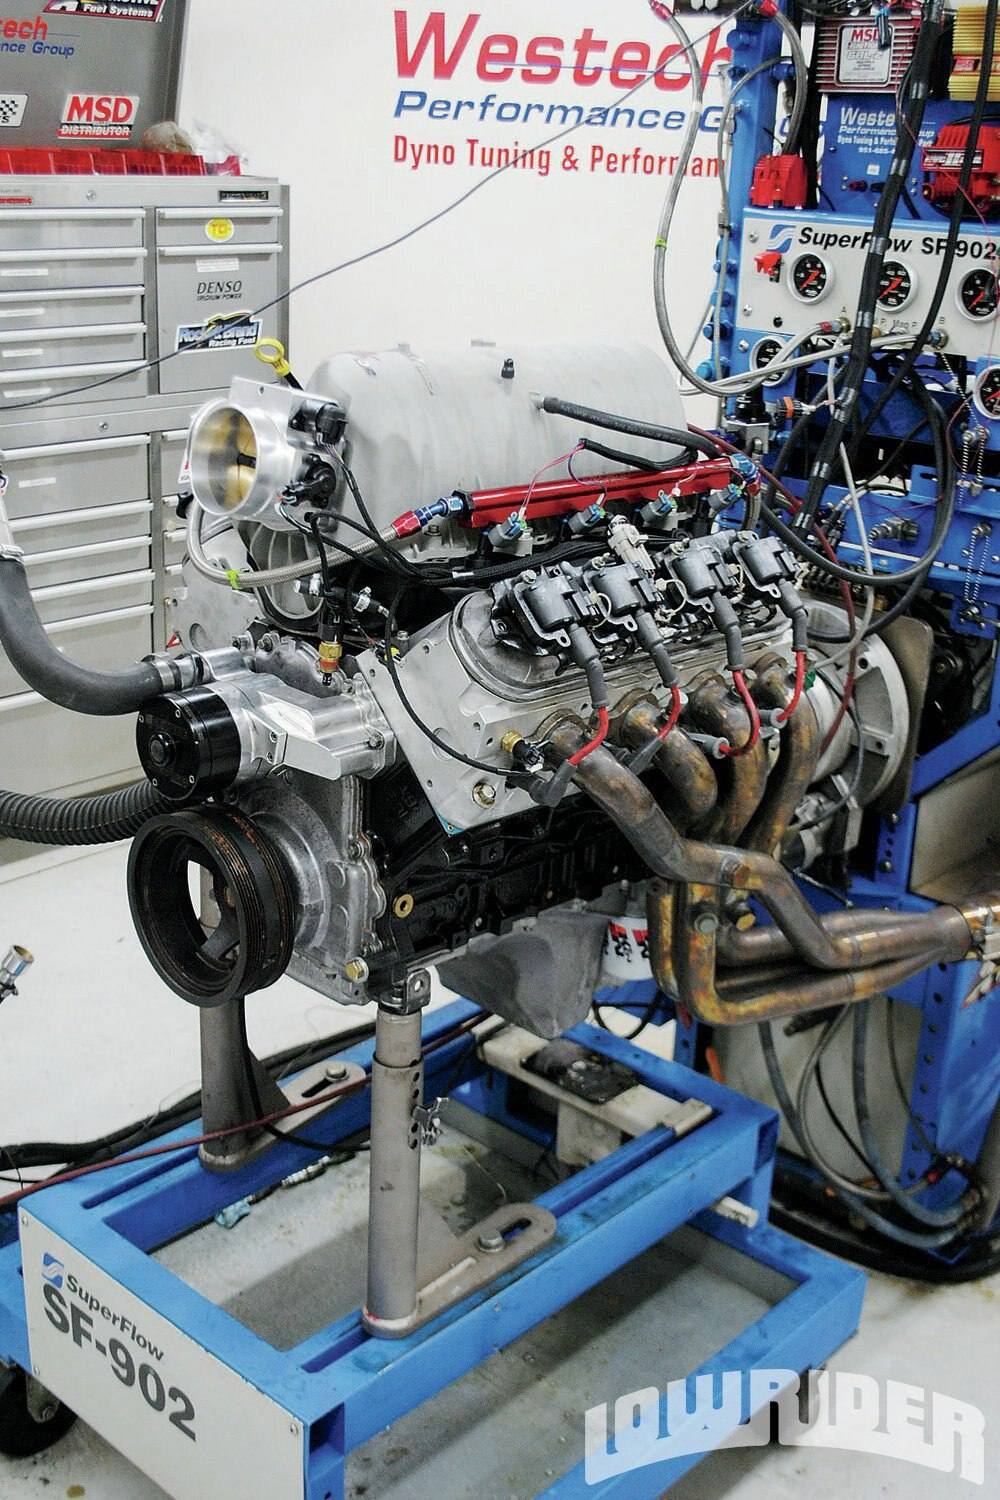 <strong>12</strong>. After installation of the TEA heads, Crane cam and FAST intake, the power jumped significantly. On the 4.8L, the upgraded increased power from 333 hp and 343 lb-ft to 476 hp and 392 lb-ft. On the 5.3L, the swap pushed the peak numbers from 344 hp and 379 lb-ft to 484 hp and 424 lb-ft of torque.